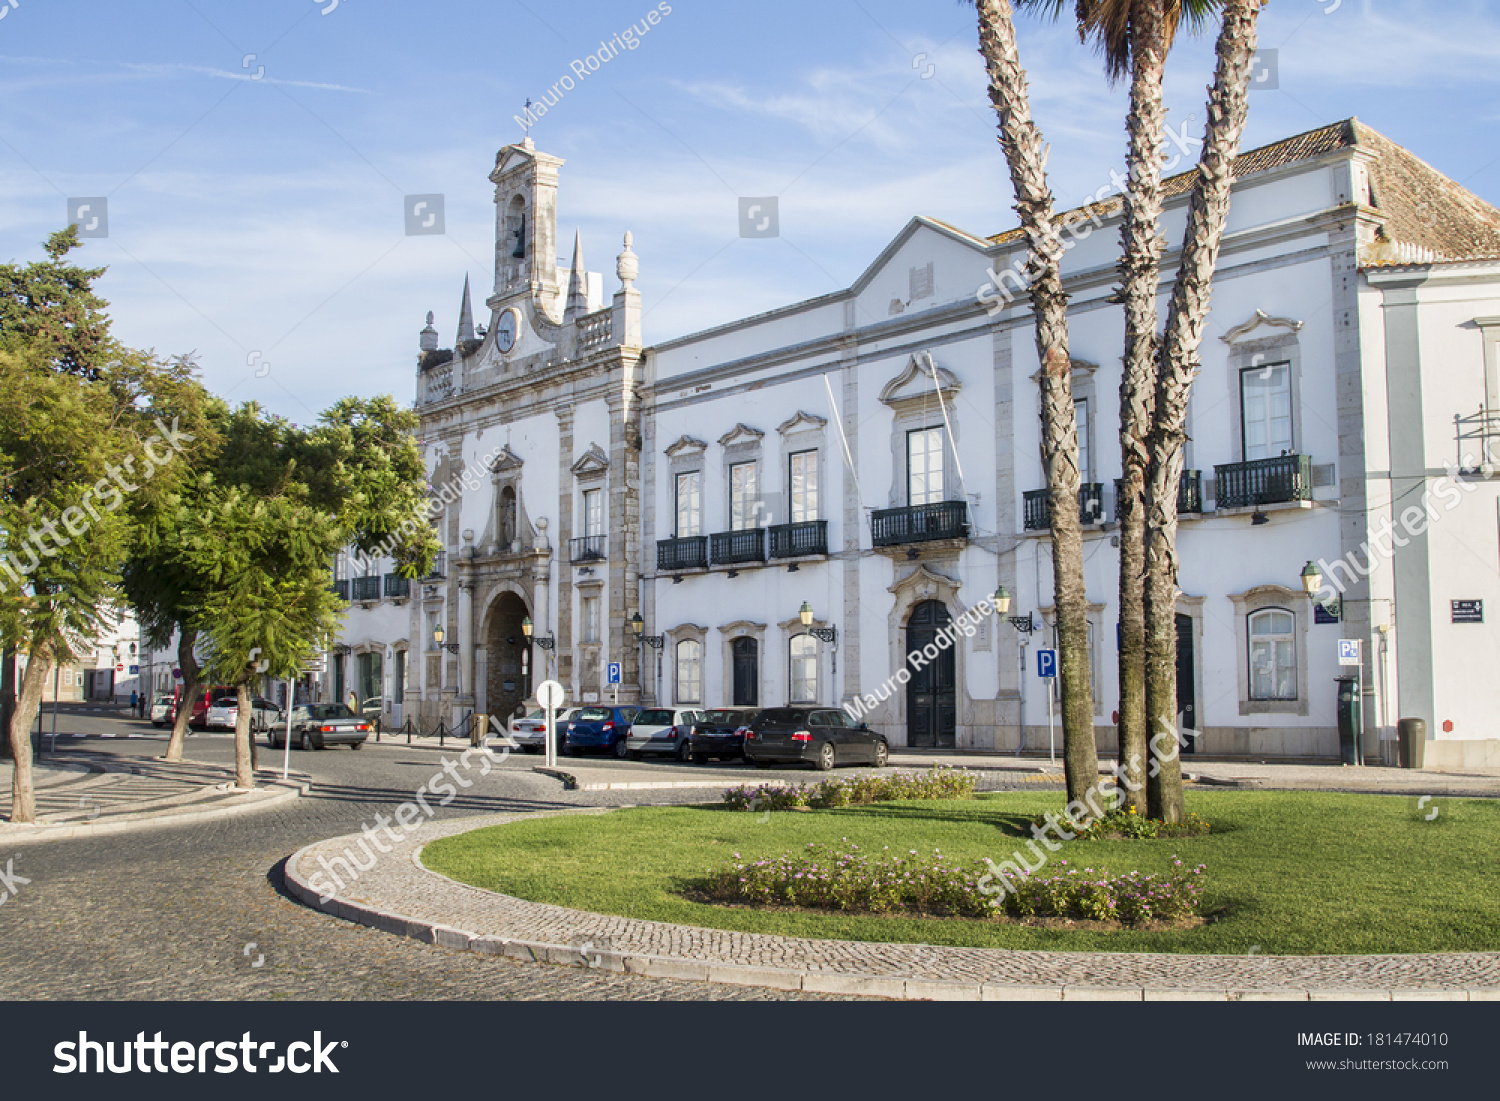 Great View Of The Iconic Landmark Church Of The City Of Faro, Portugal. Nice Look